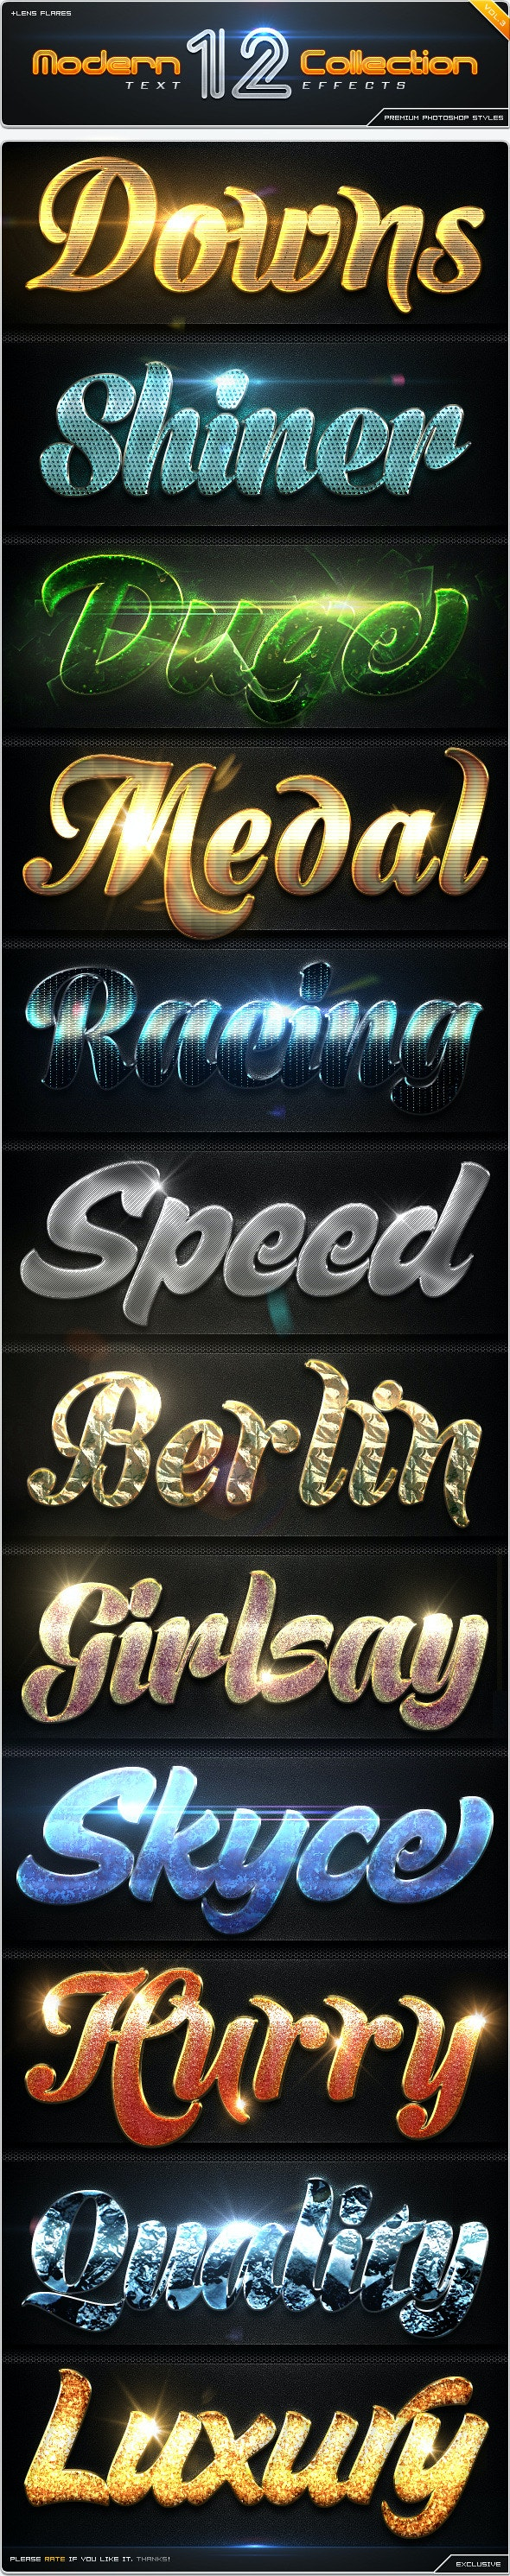 12 Modern Collection Text Effect Styles Vol.3 - Text Effects Styles